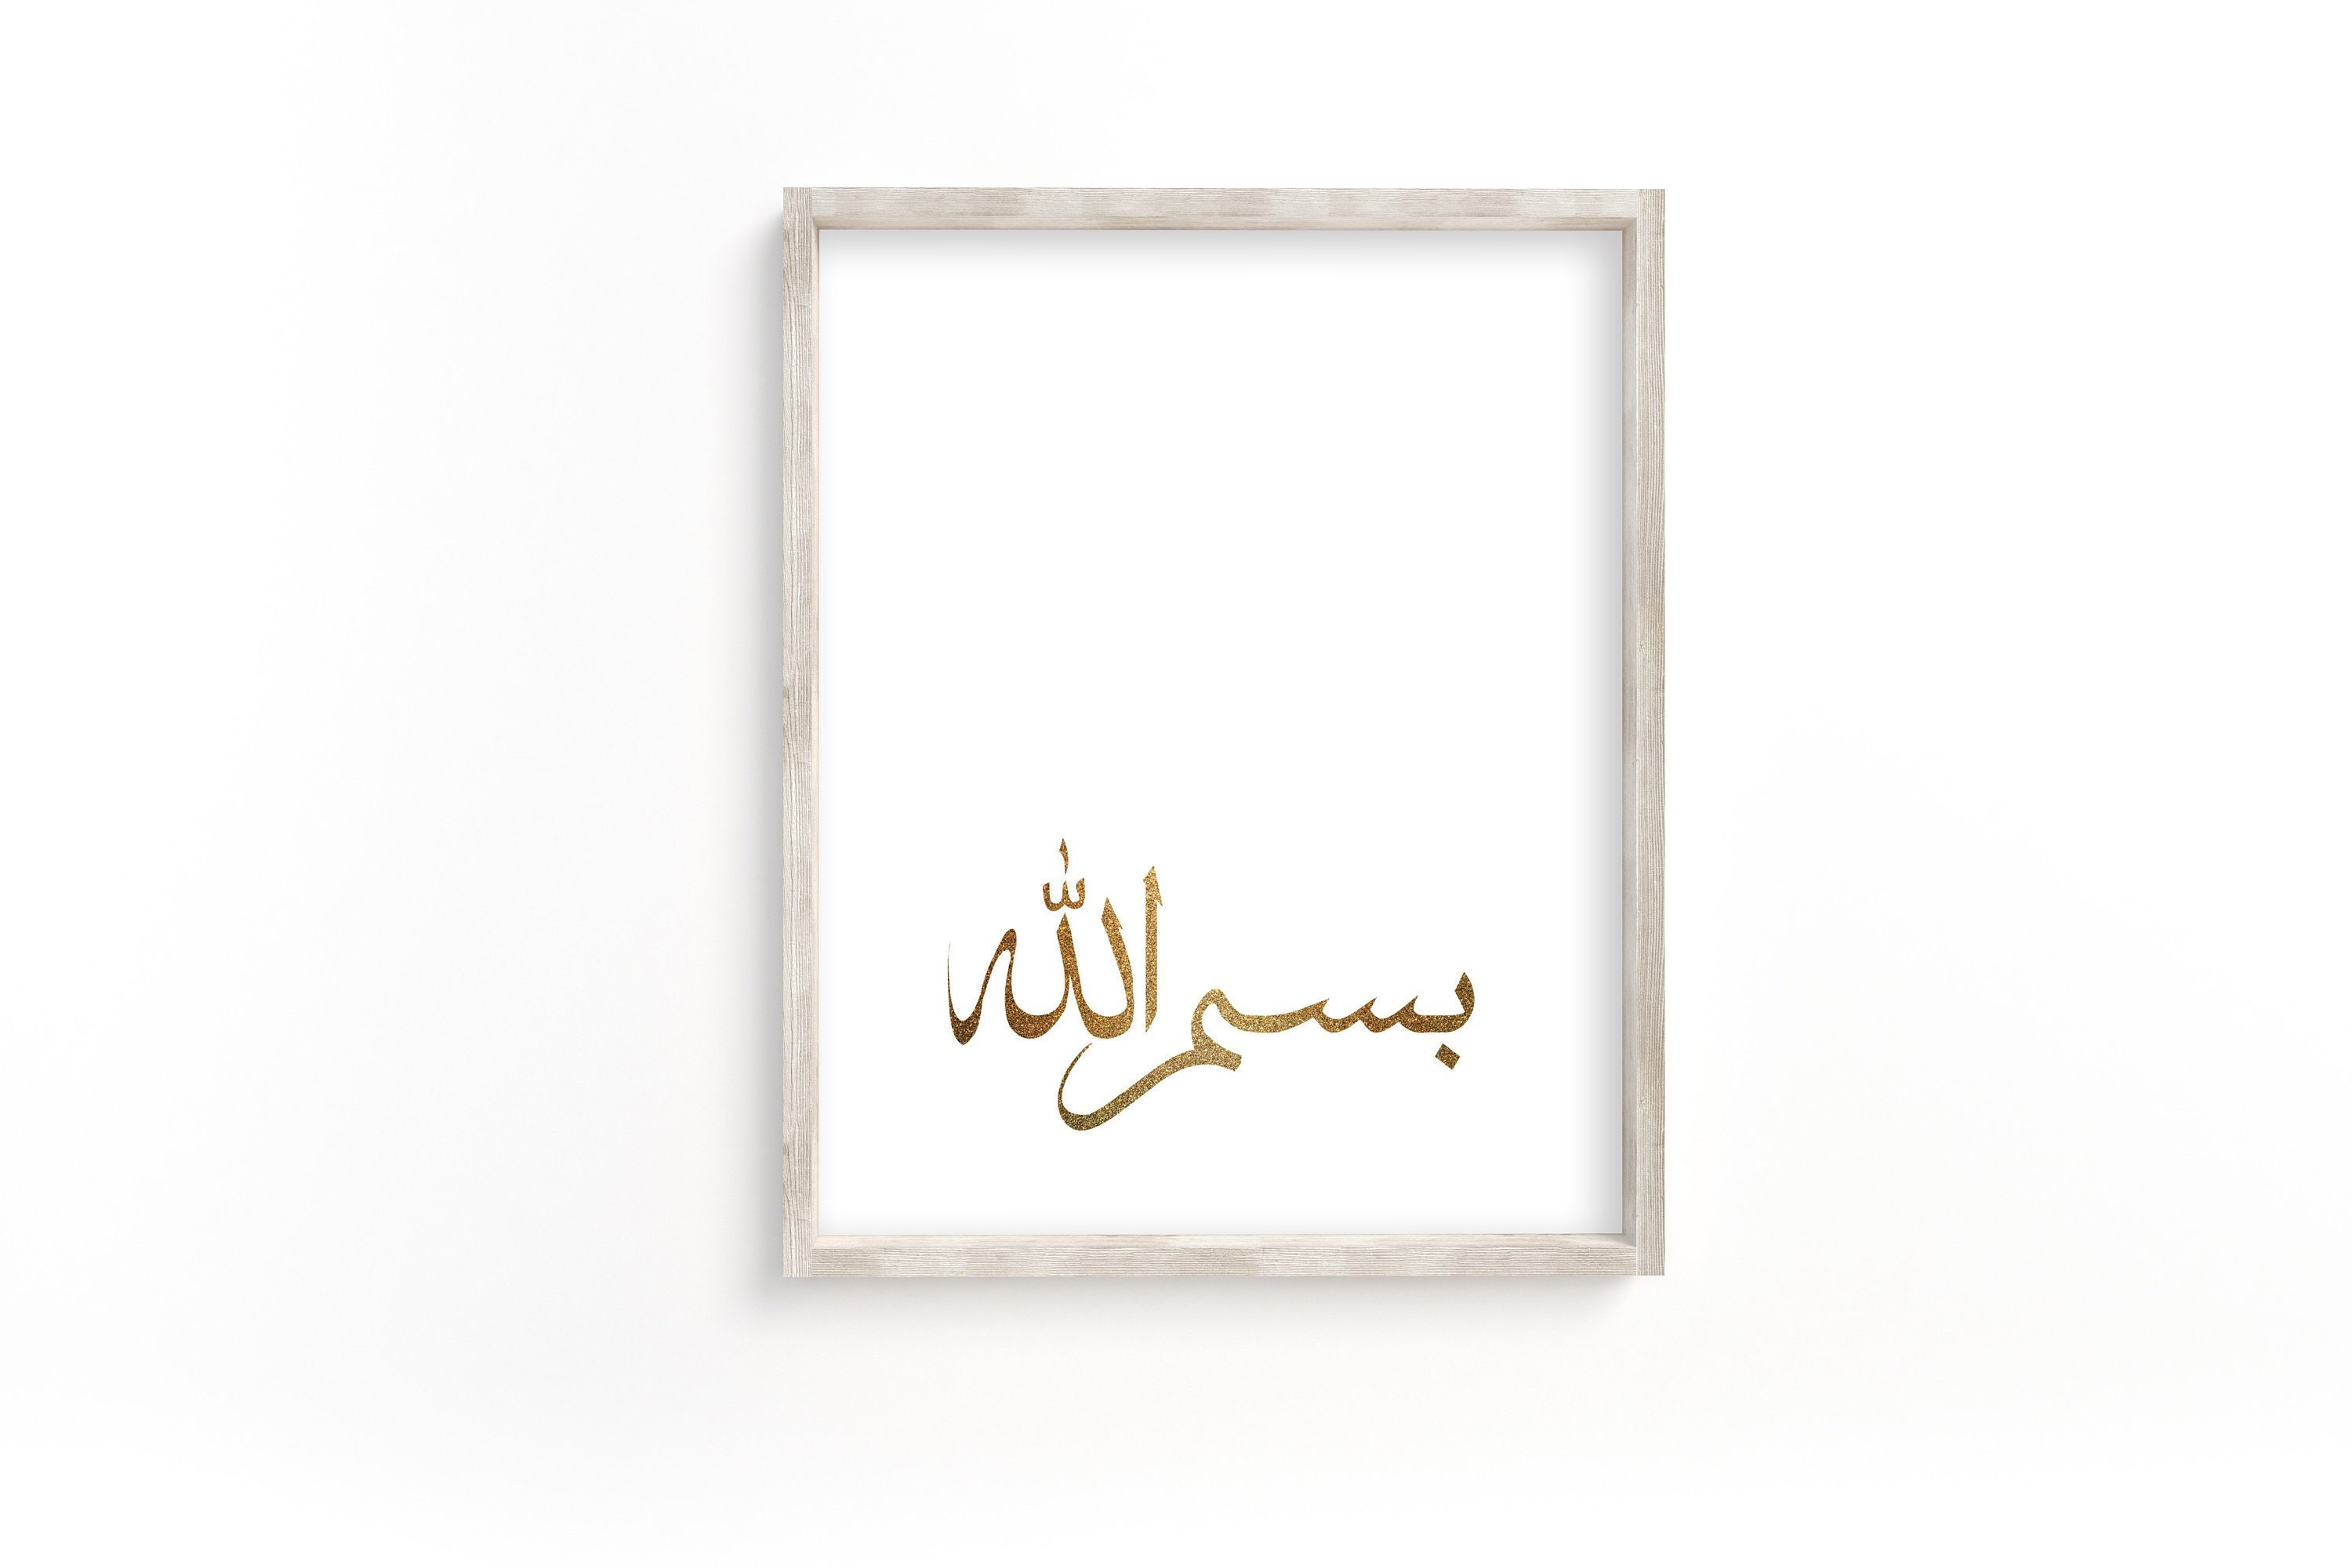 Bismillah islamic calligraphy arabic calligraphy wall art muslim modern home decor islam gold print office islamic poster nursery print